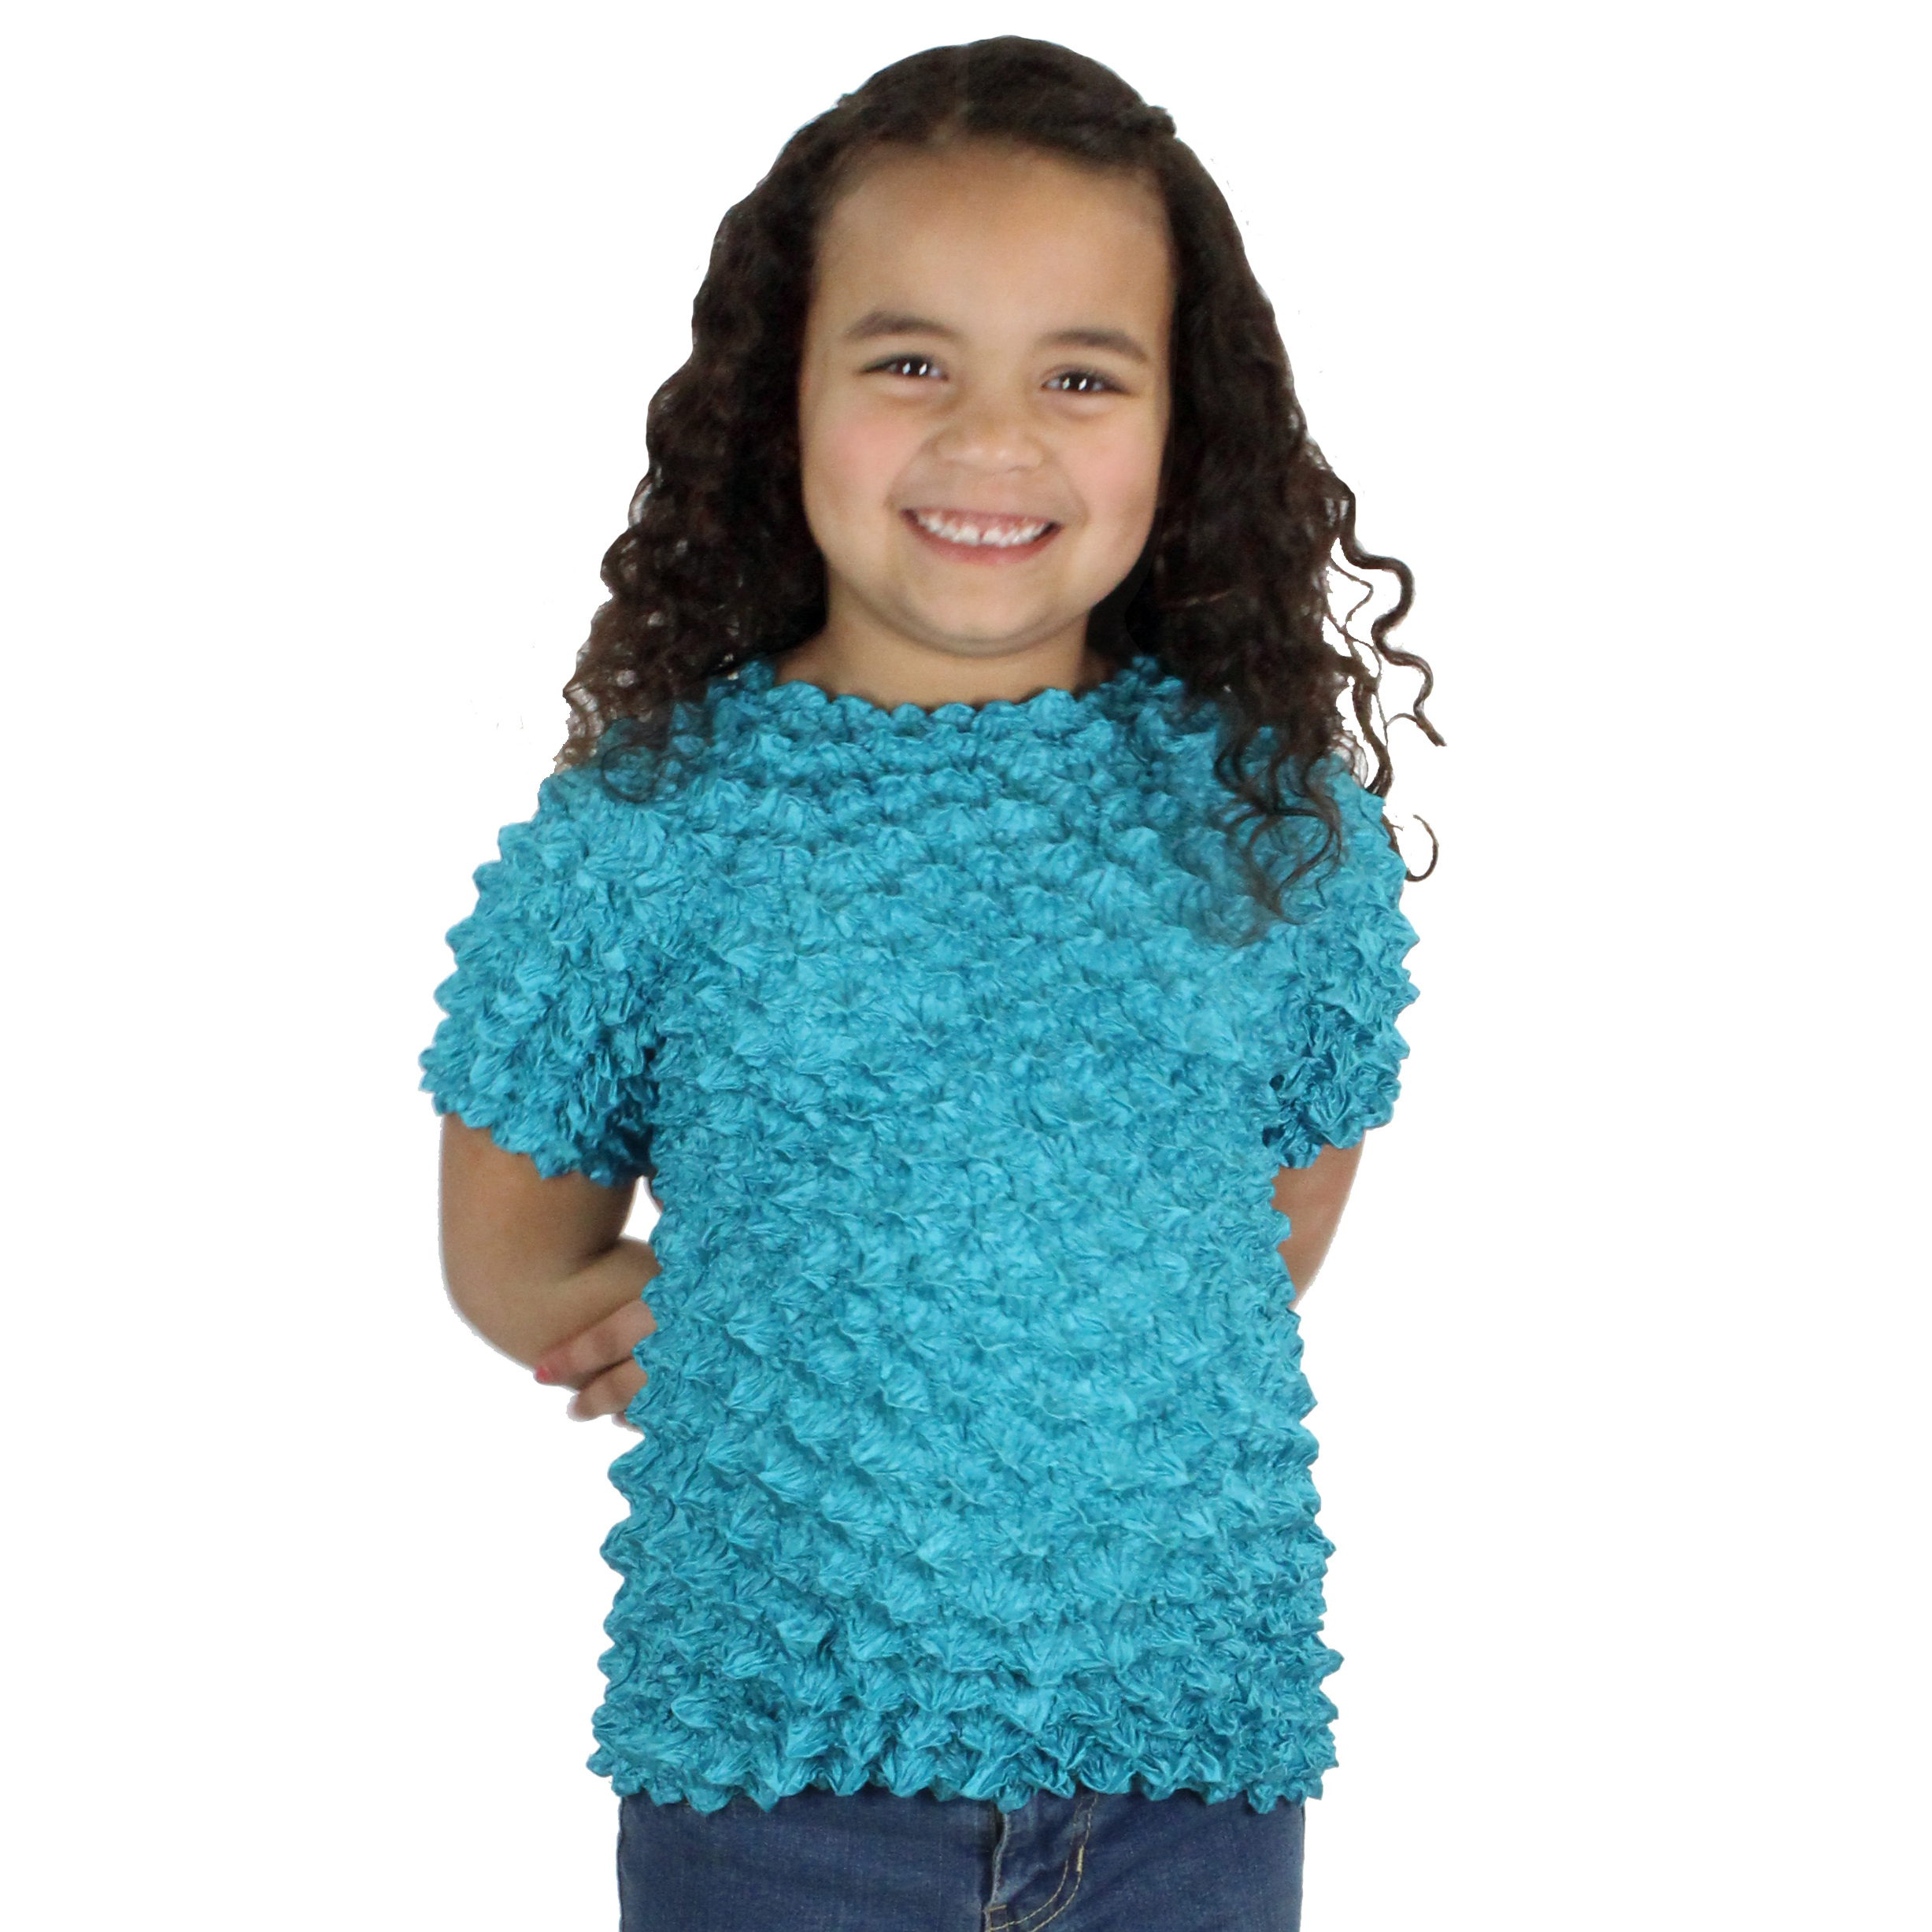 Wholesale Silky Touch Popcorn - Kids Size  Short Sleeve Teal - Toddler - Tween